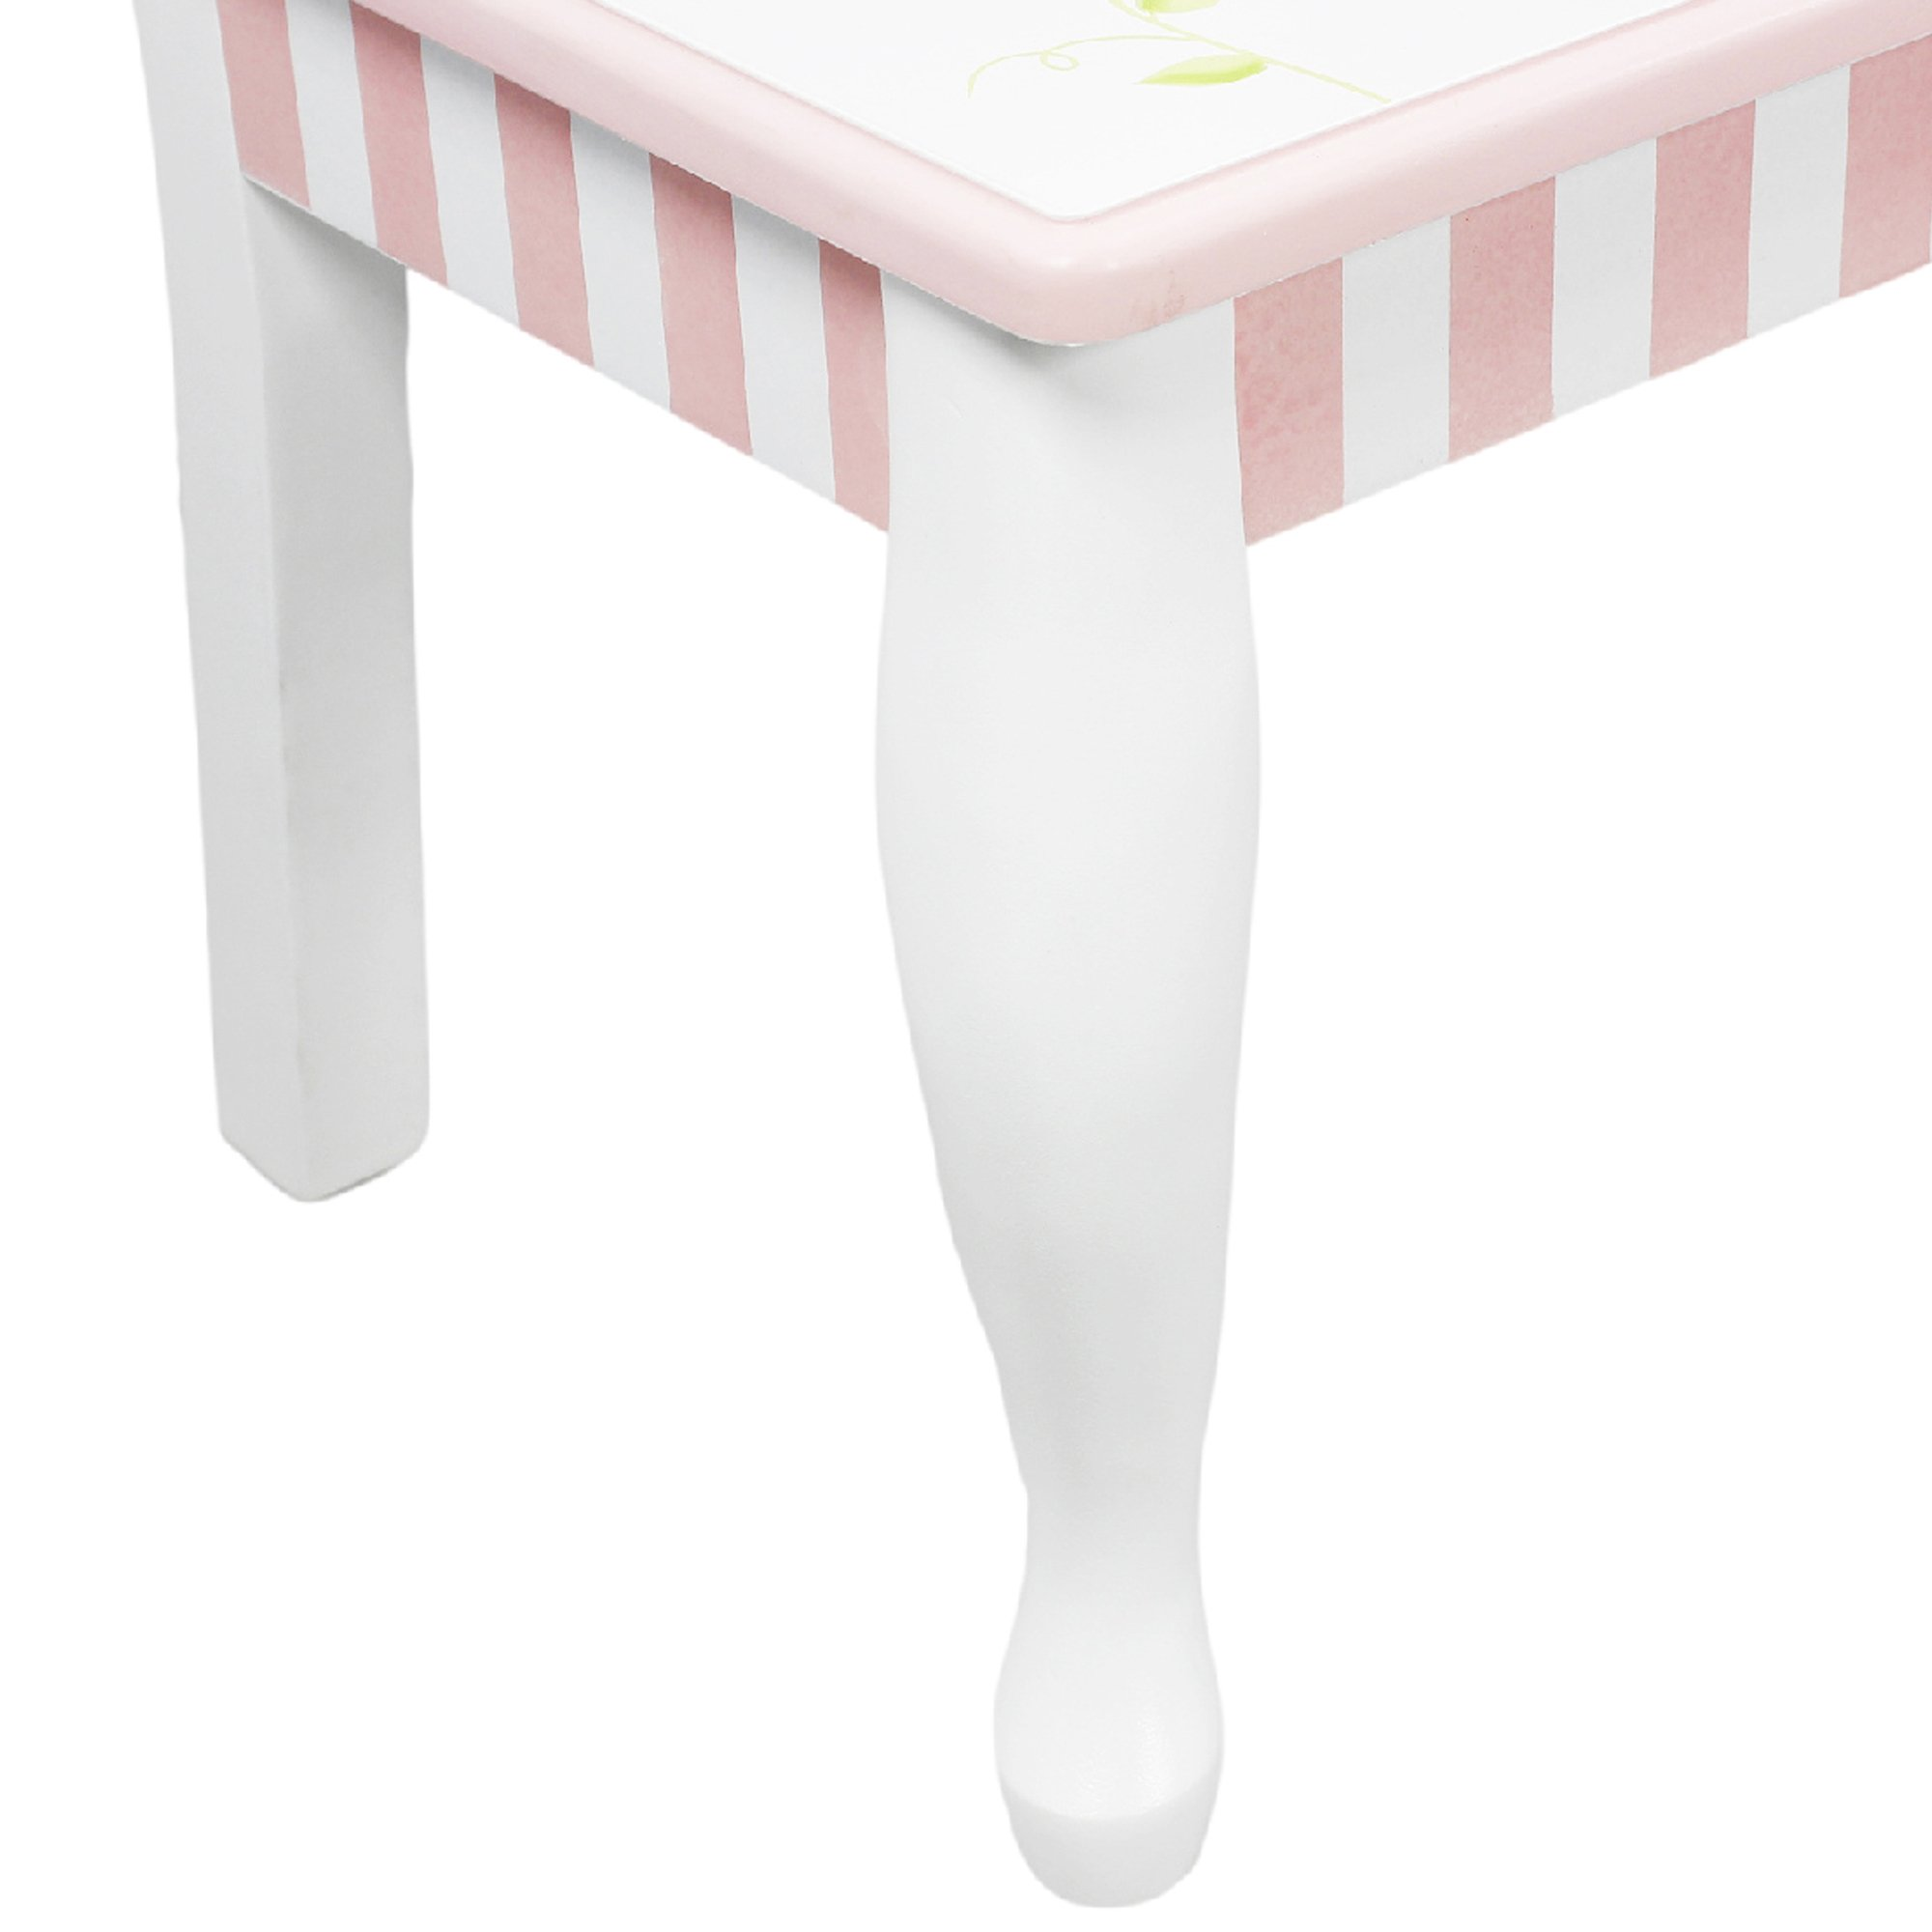 Fantasy Fields - Princess & Frog Thematic Hand Crafted Kids Wooden Table and 2 Chairs Set  Imagination Inspiring Hand Crafted & Hand Painted Details   Non-Toxic, Lead Free Water-based Paint by Fantasy Fields (Image #10)